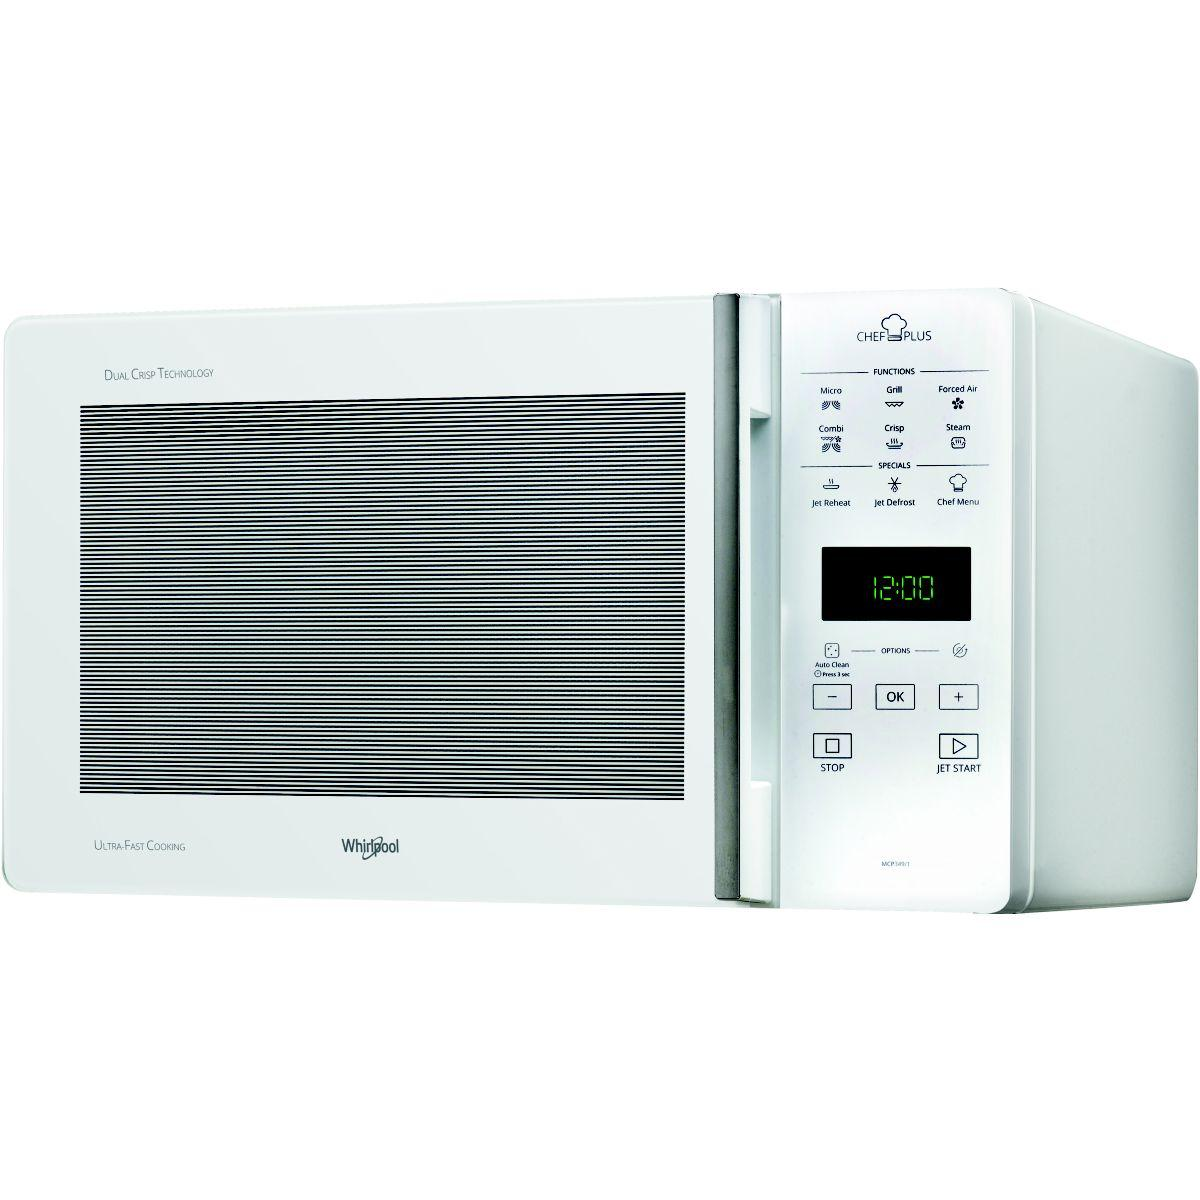 Micro ondes whirlpool mcp349wh - livraison offerte : code liv